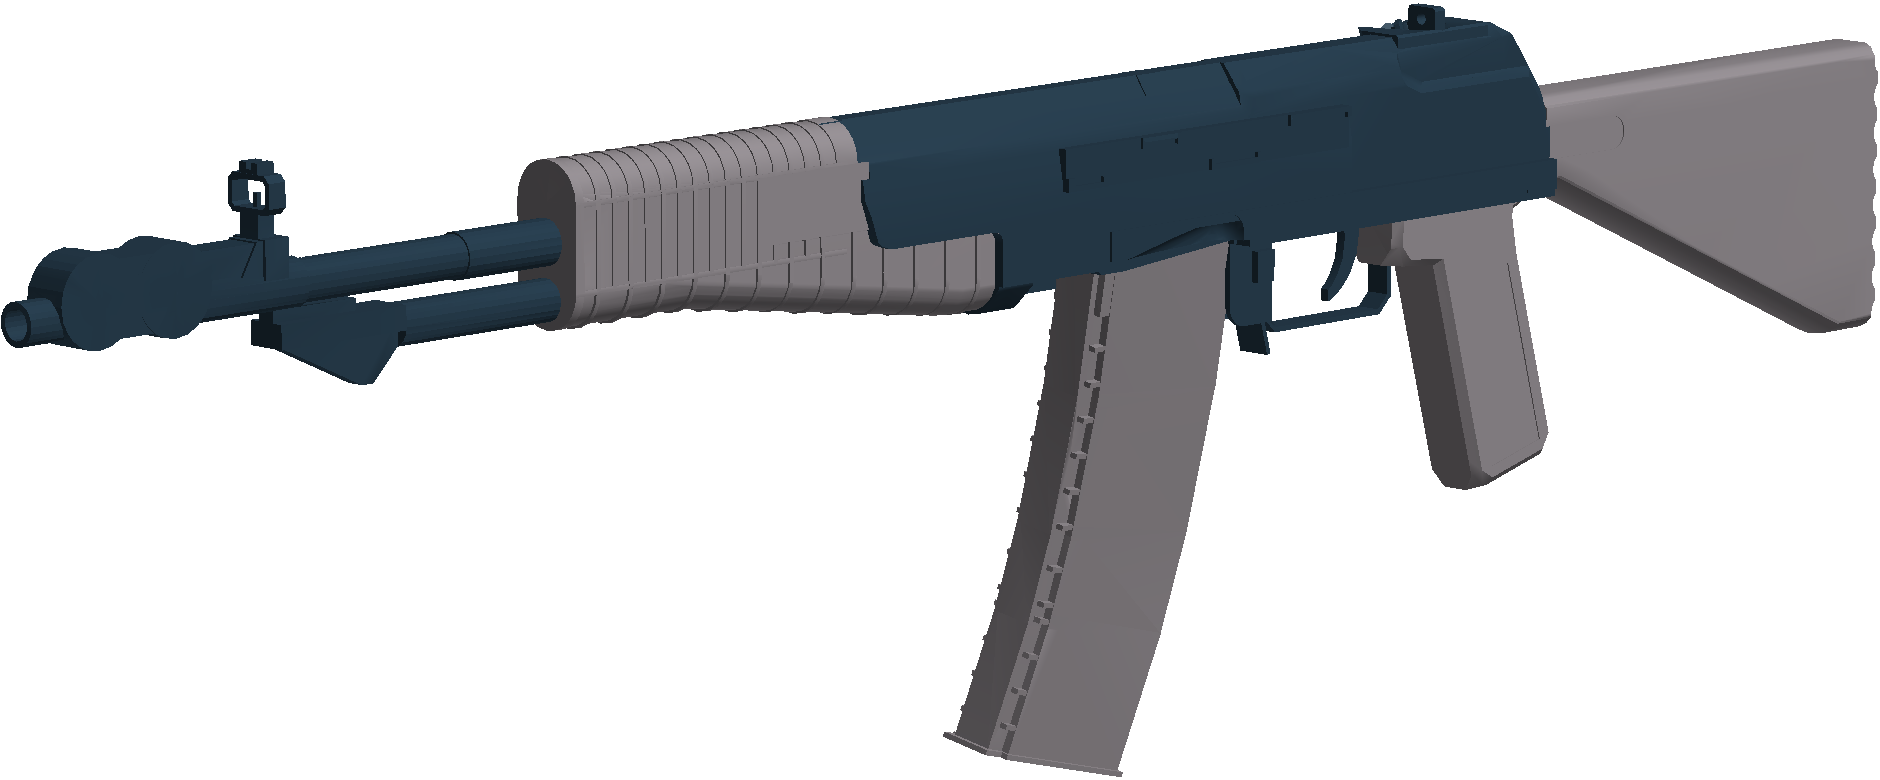 m16a4 phantom forces